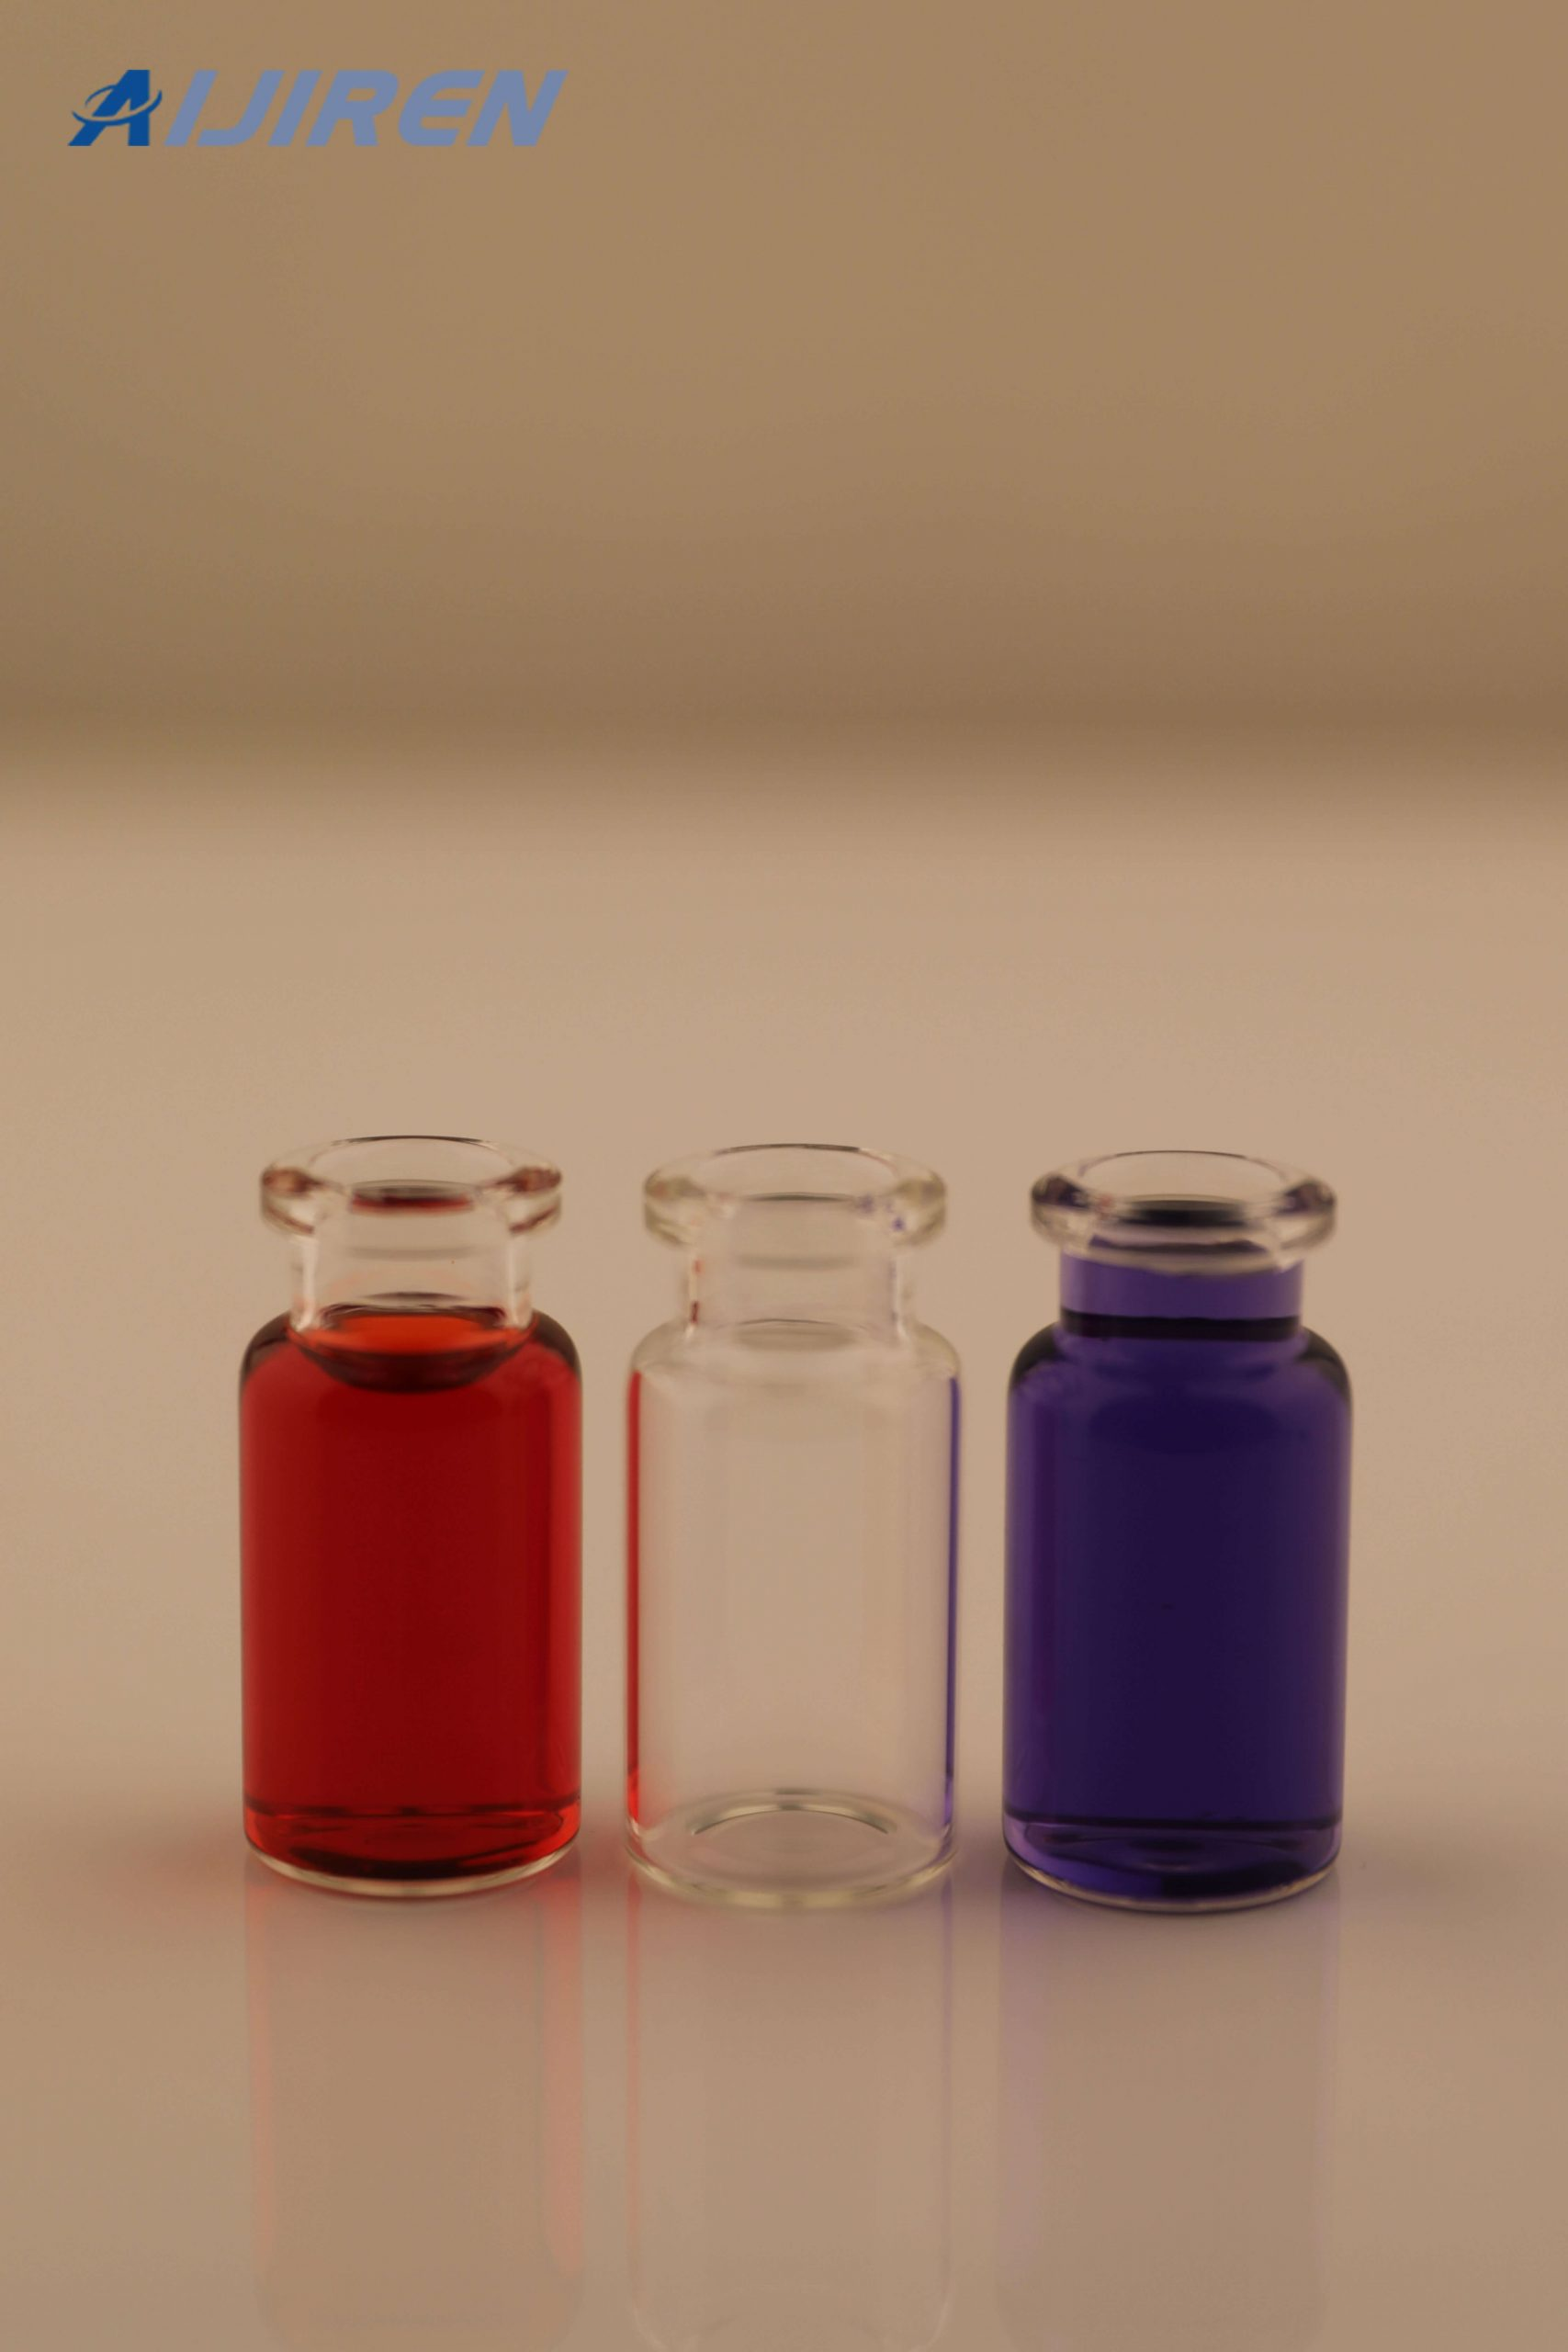 20ml headspace vial10ML Headspace Vial for GC for Aijiren